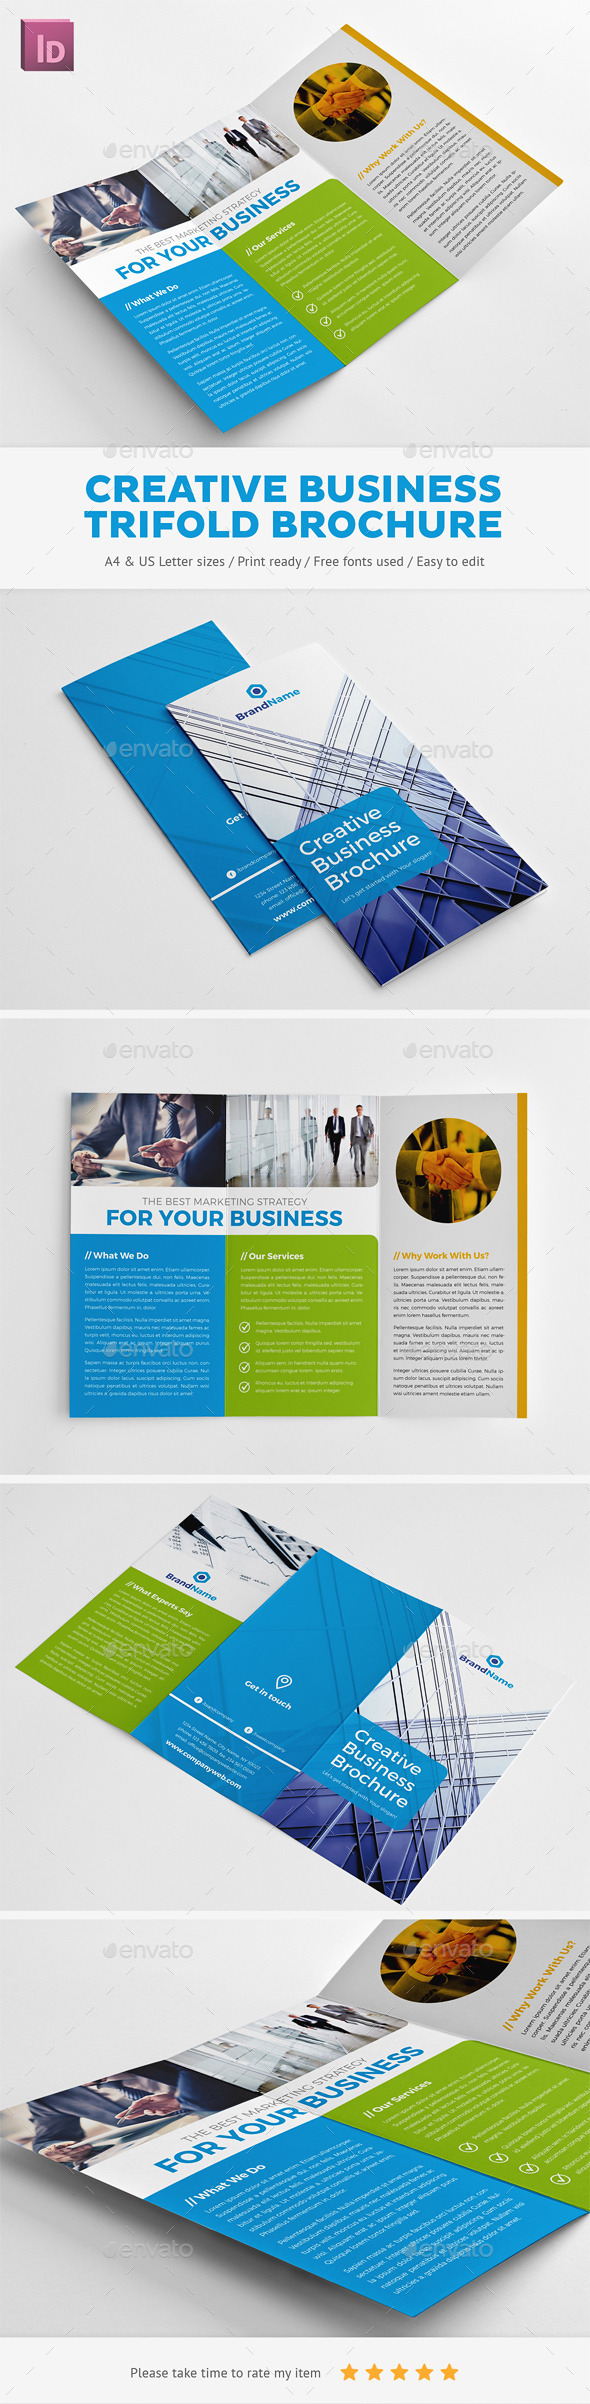 GraphicRiver Creative Business Trifold Brochure 10062114